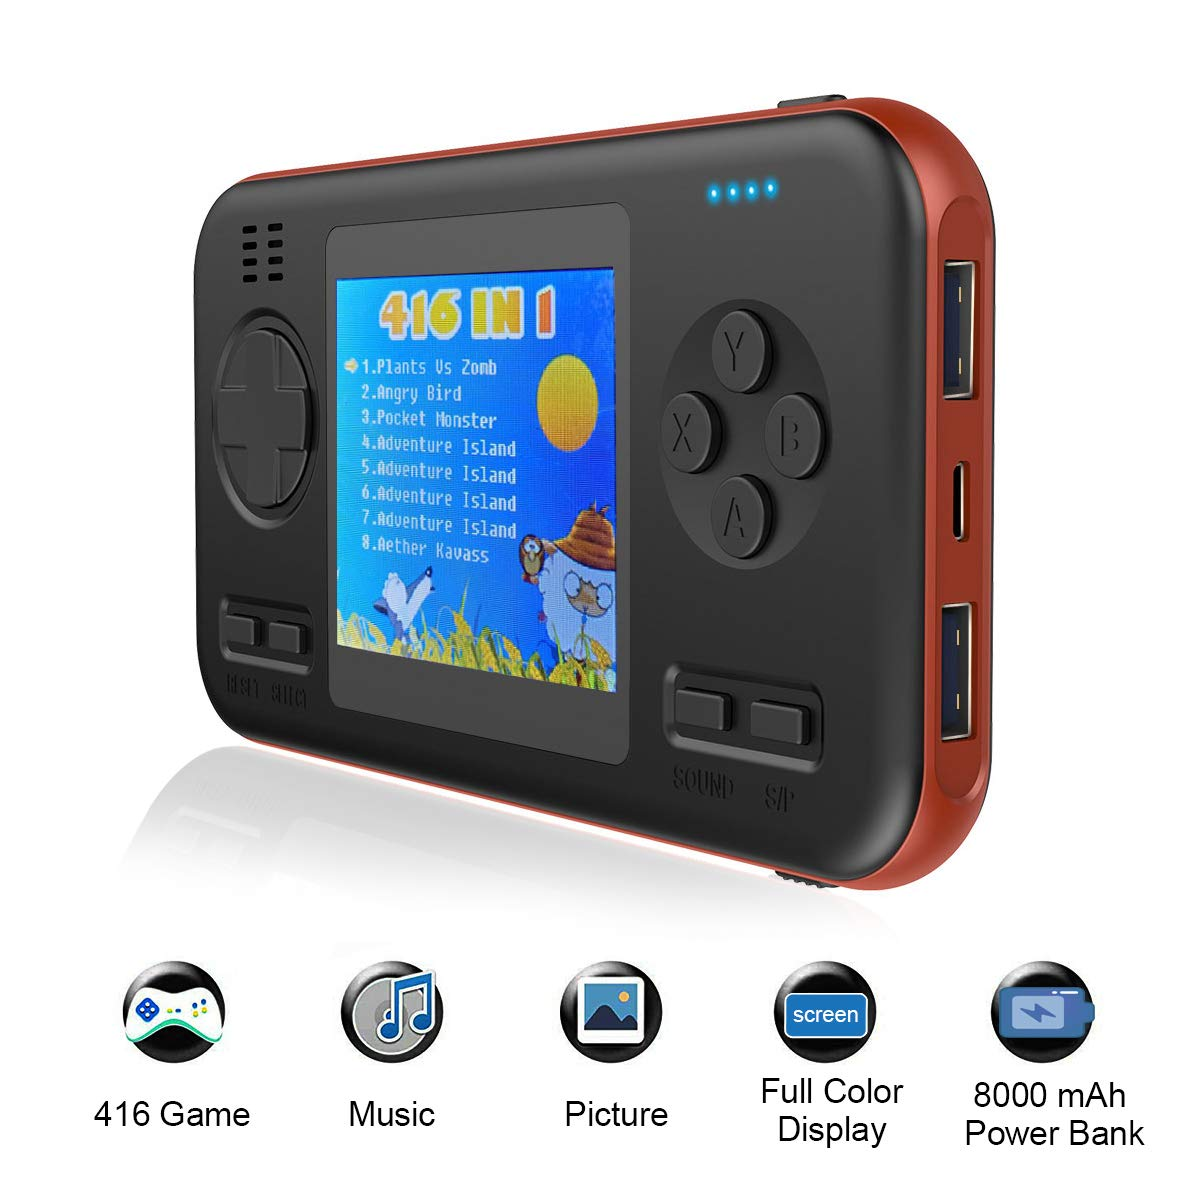 TEEPAO 2.8 Inch Game Handheld Console, Retro Video FC PVP Game Player Gameboy 416 Classic Games, Built-in 8000 mAh Power Bank, Portable Video Game Console with Fast Charger for Travel (Orange Edge) by TEEPAO (Image #1)